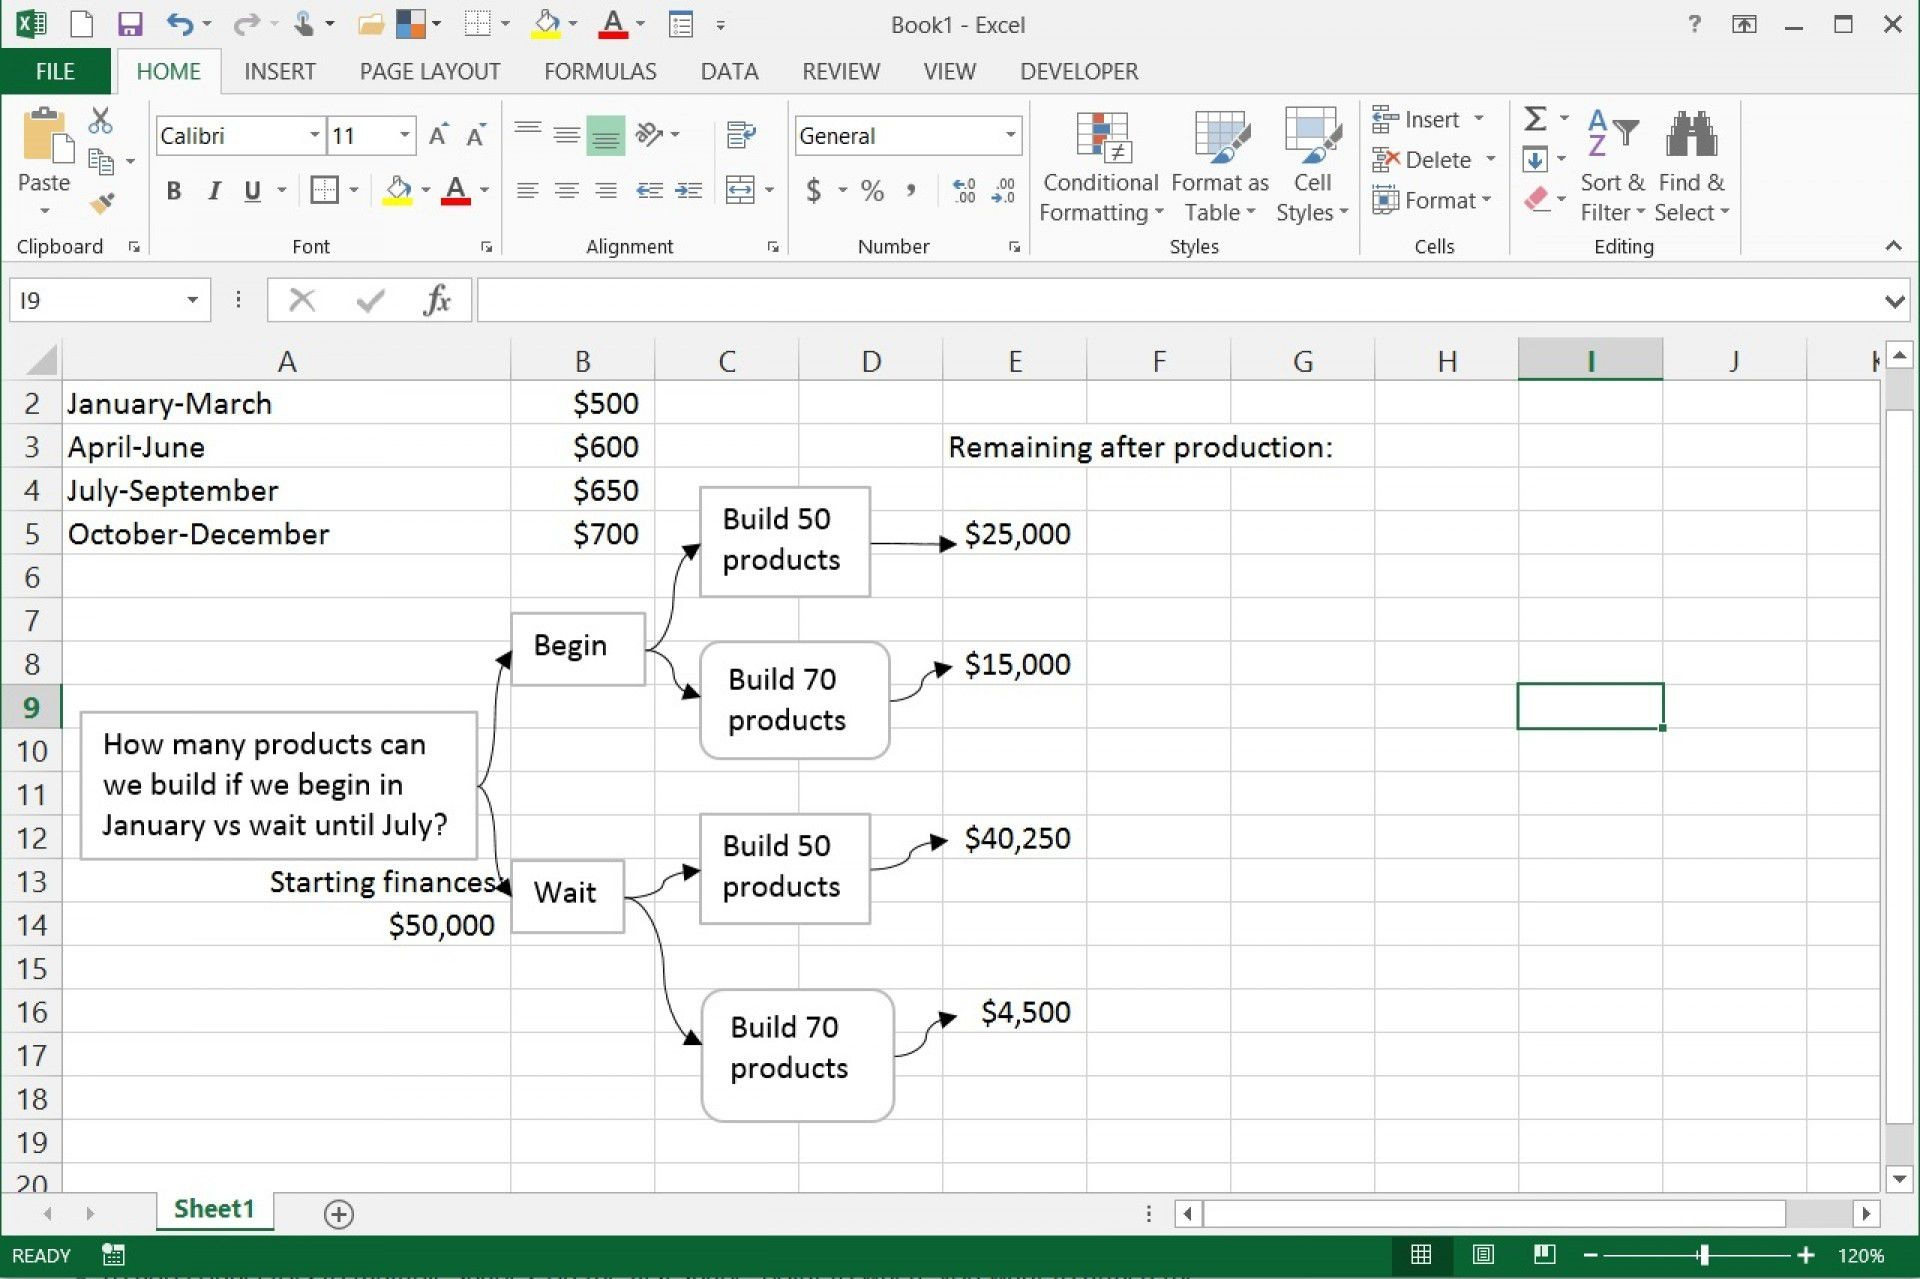 002 Frightening Decision Tree Template Excel 2016 Highest Quality 1920